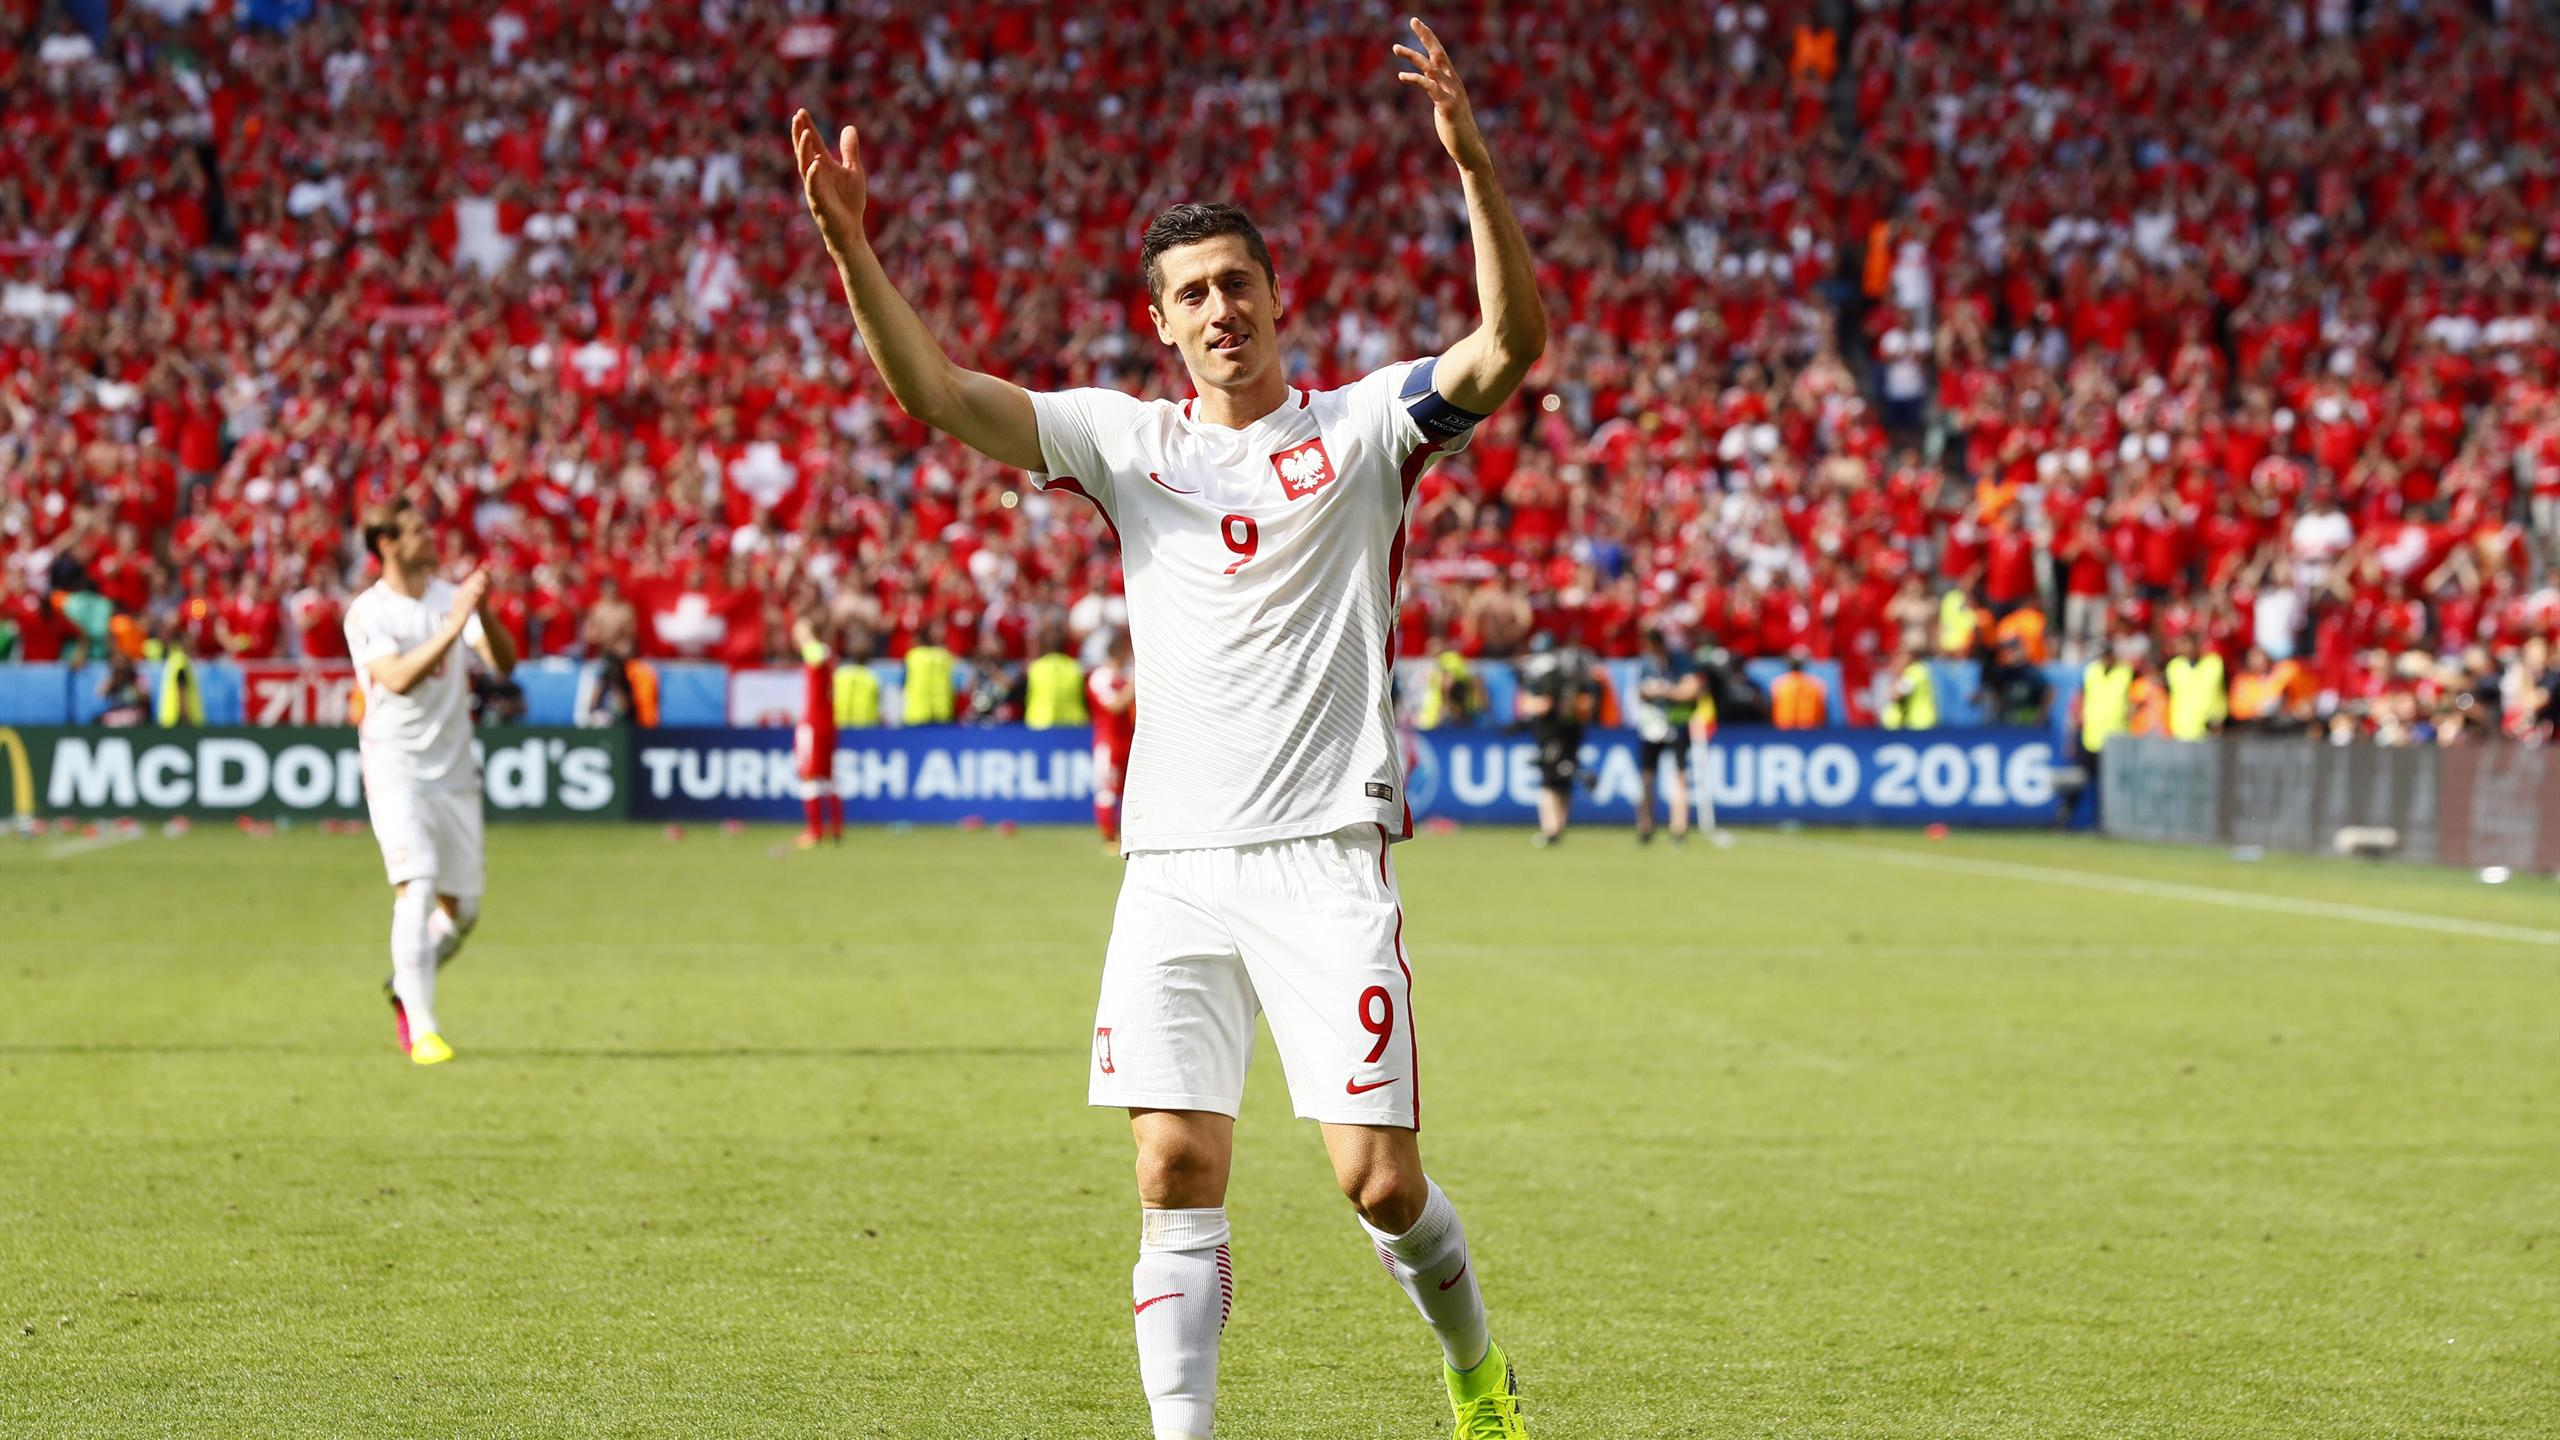 Poland's Robert Lewandowski celebrates after the penalty shootout and winning the match